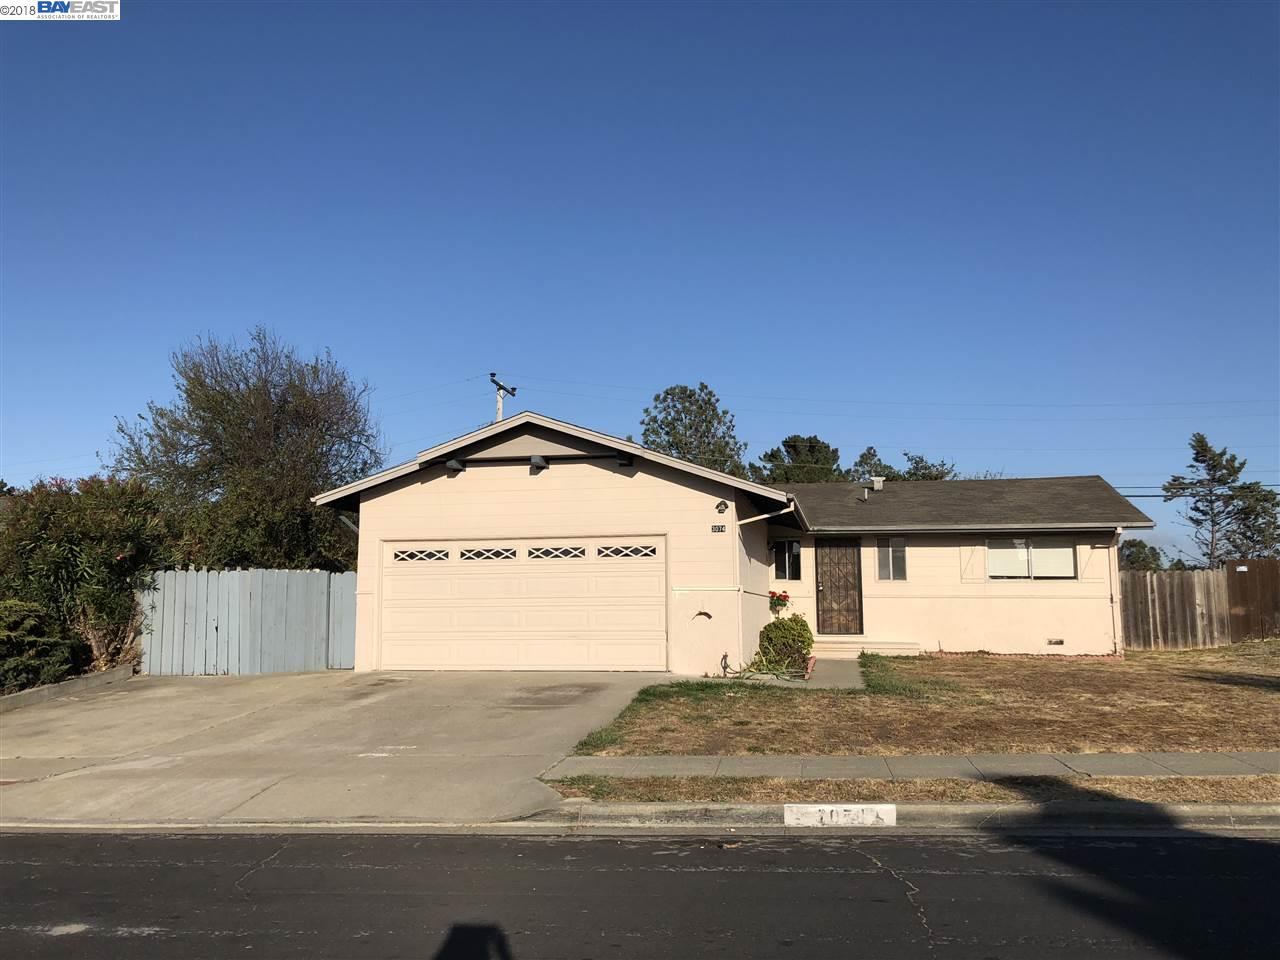 3074 JO ANN DR, RICHMOND, CA 94806